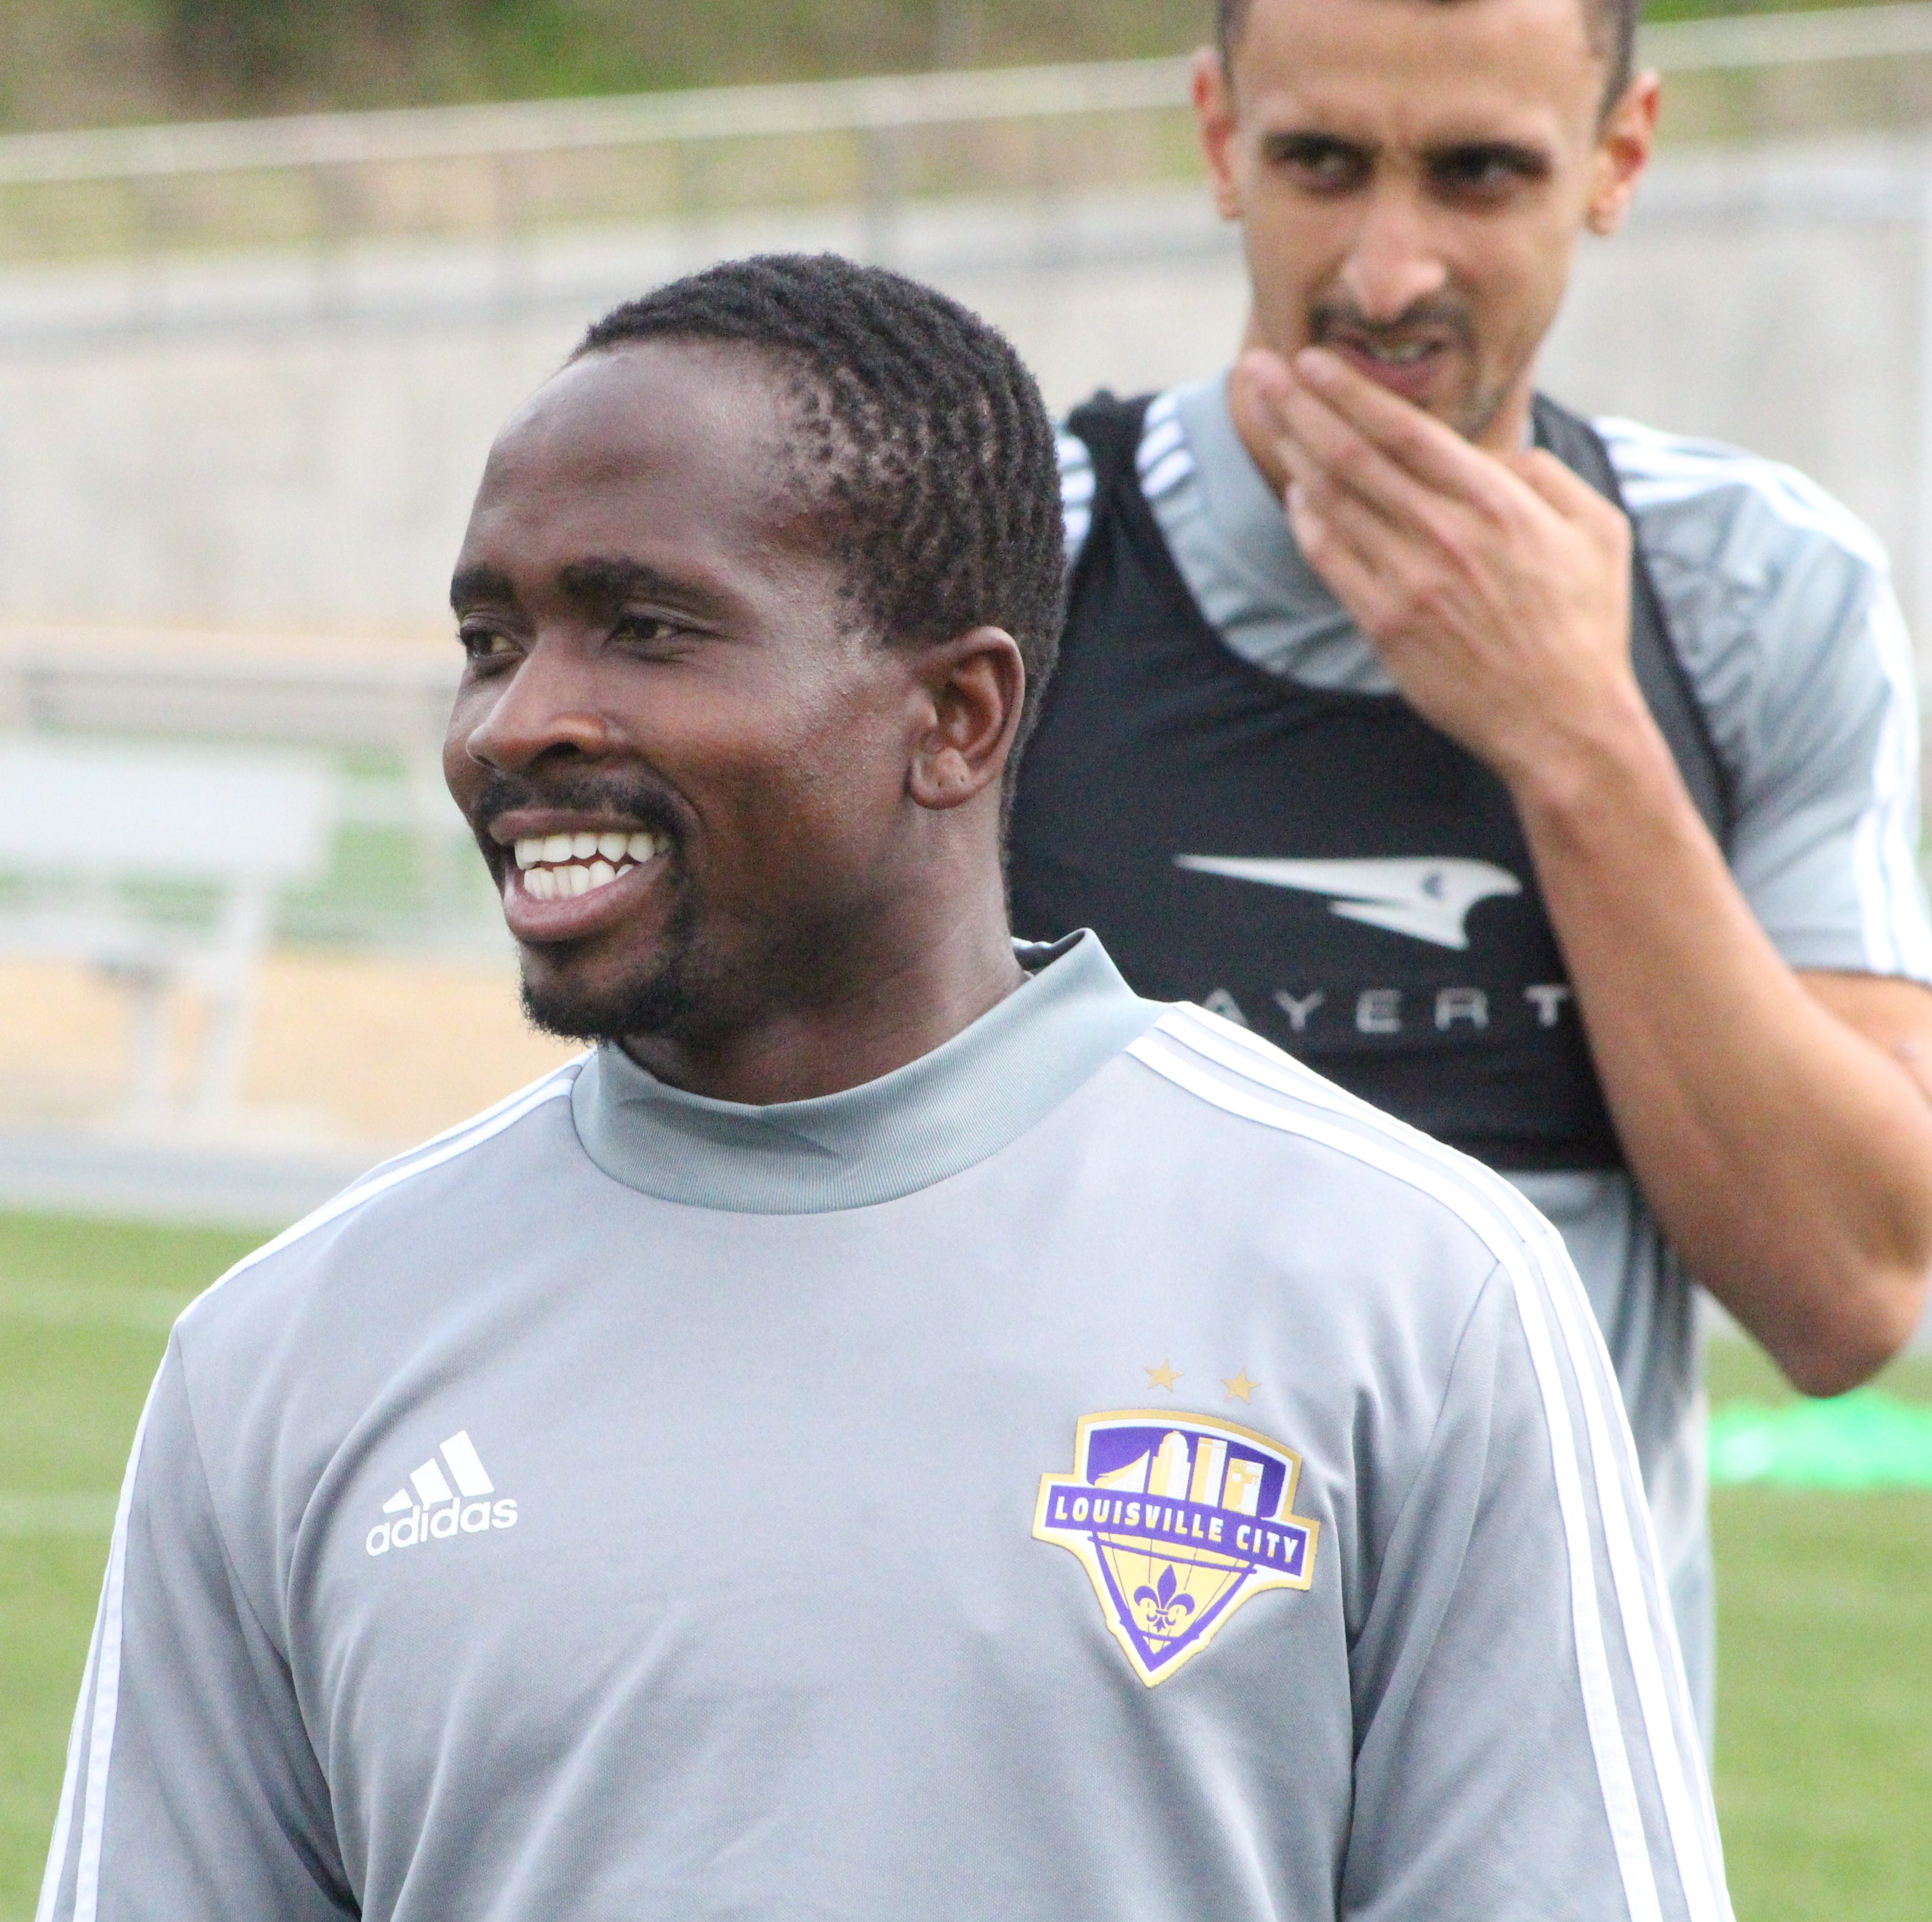 Louisville City FC's Sunny Jane waits for 'electrifying' debut with hometown team